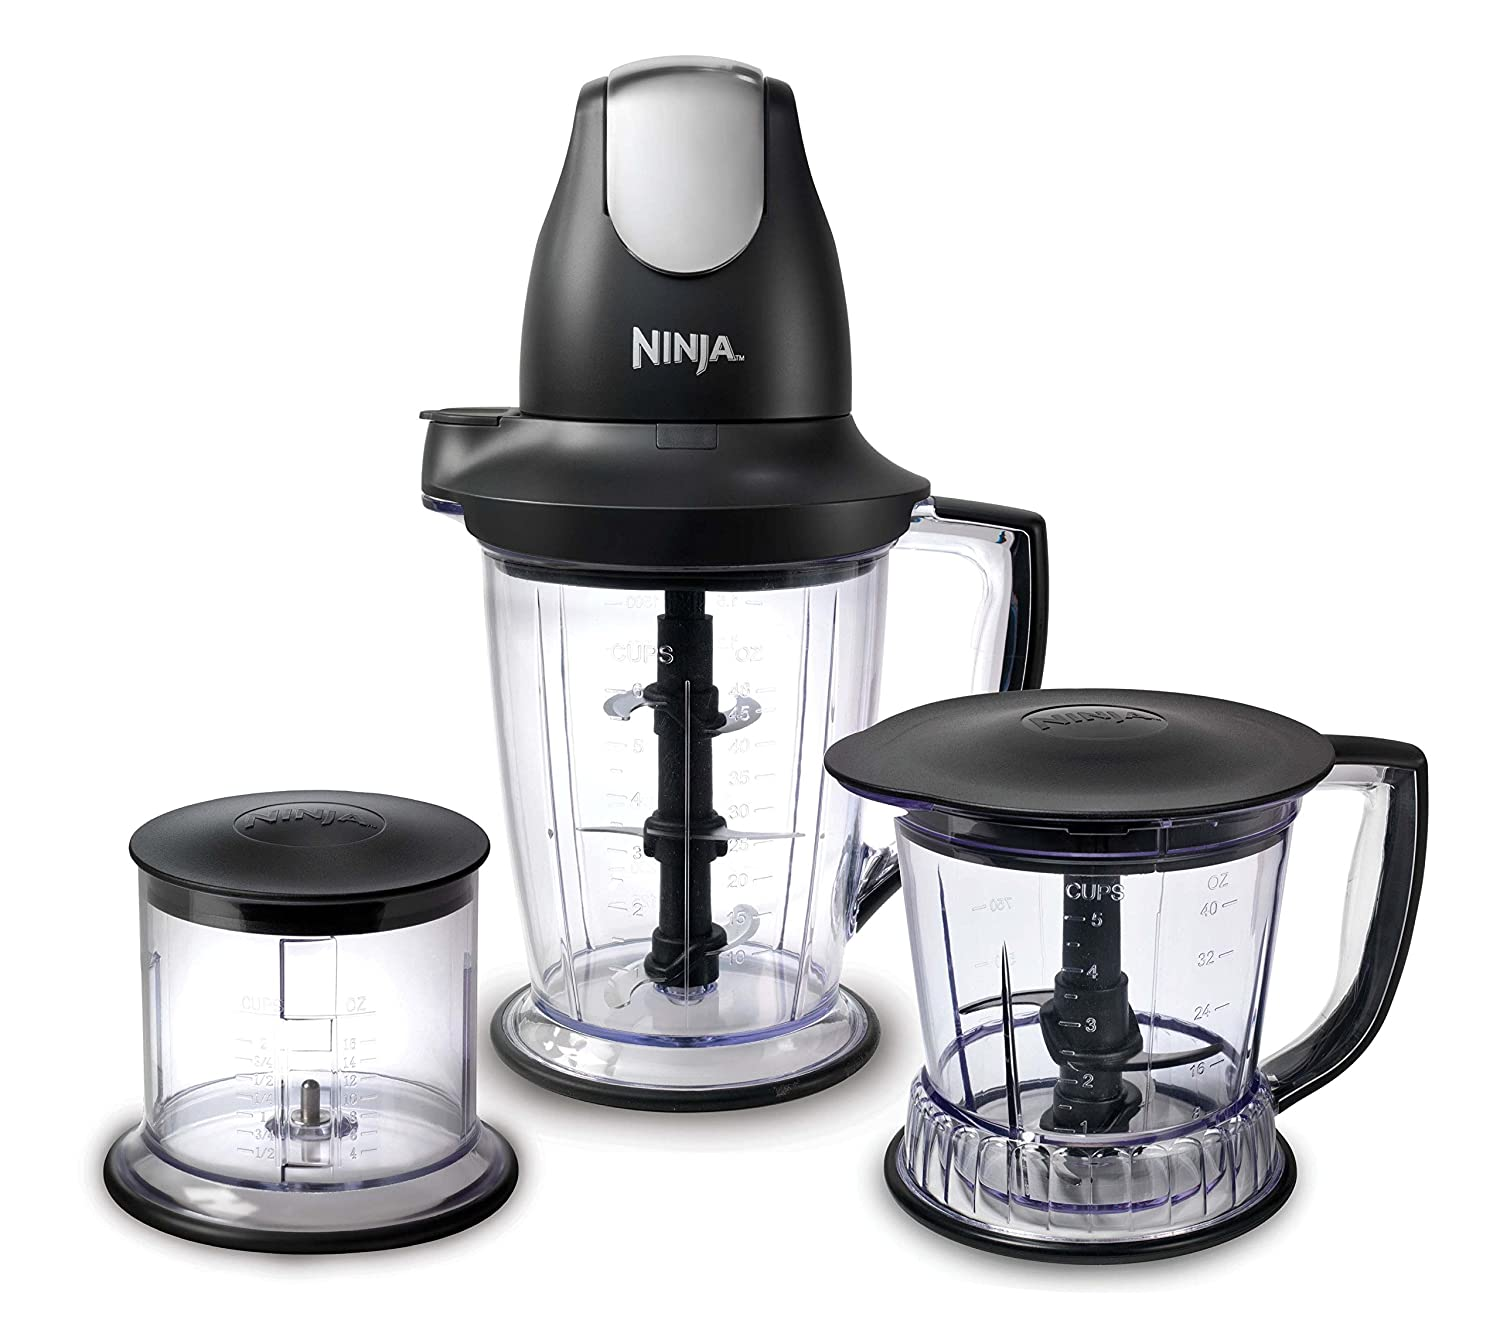 Best Food Processor 2020: The 5 Most Top-Rated And Best Selling Products 2